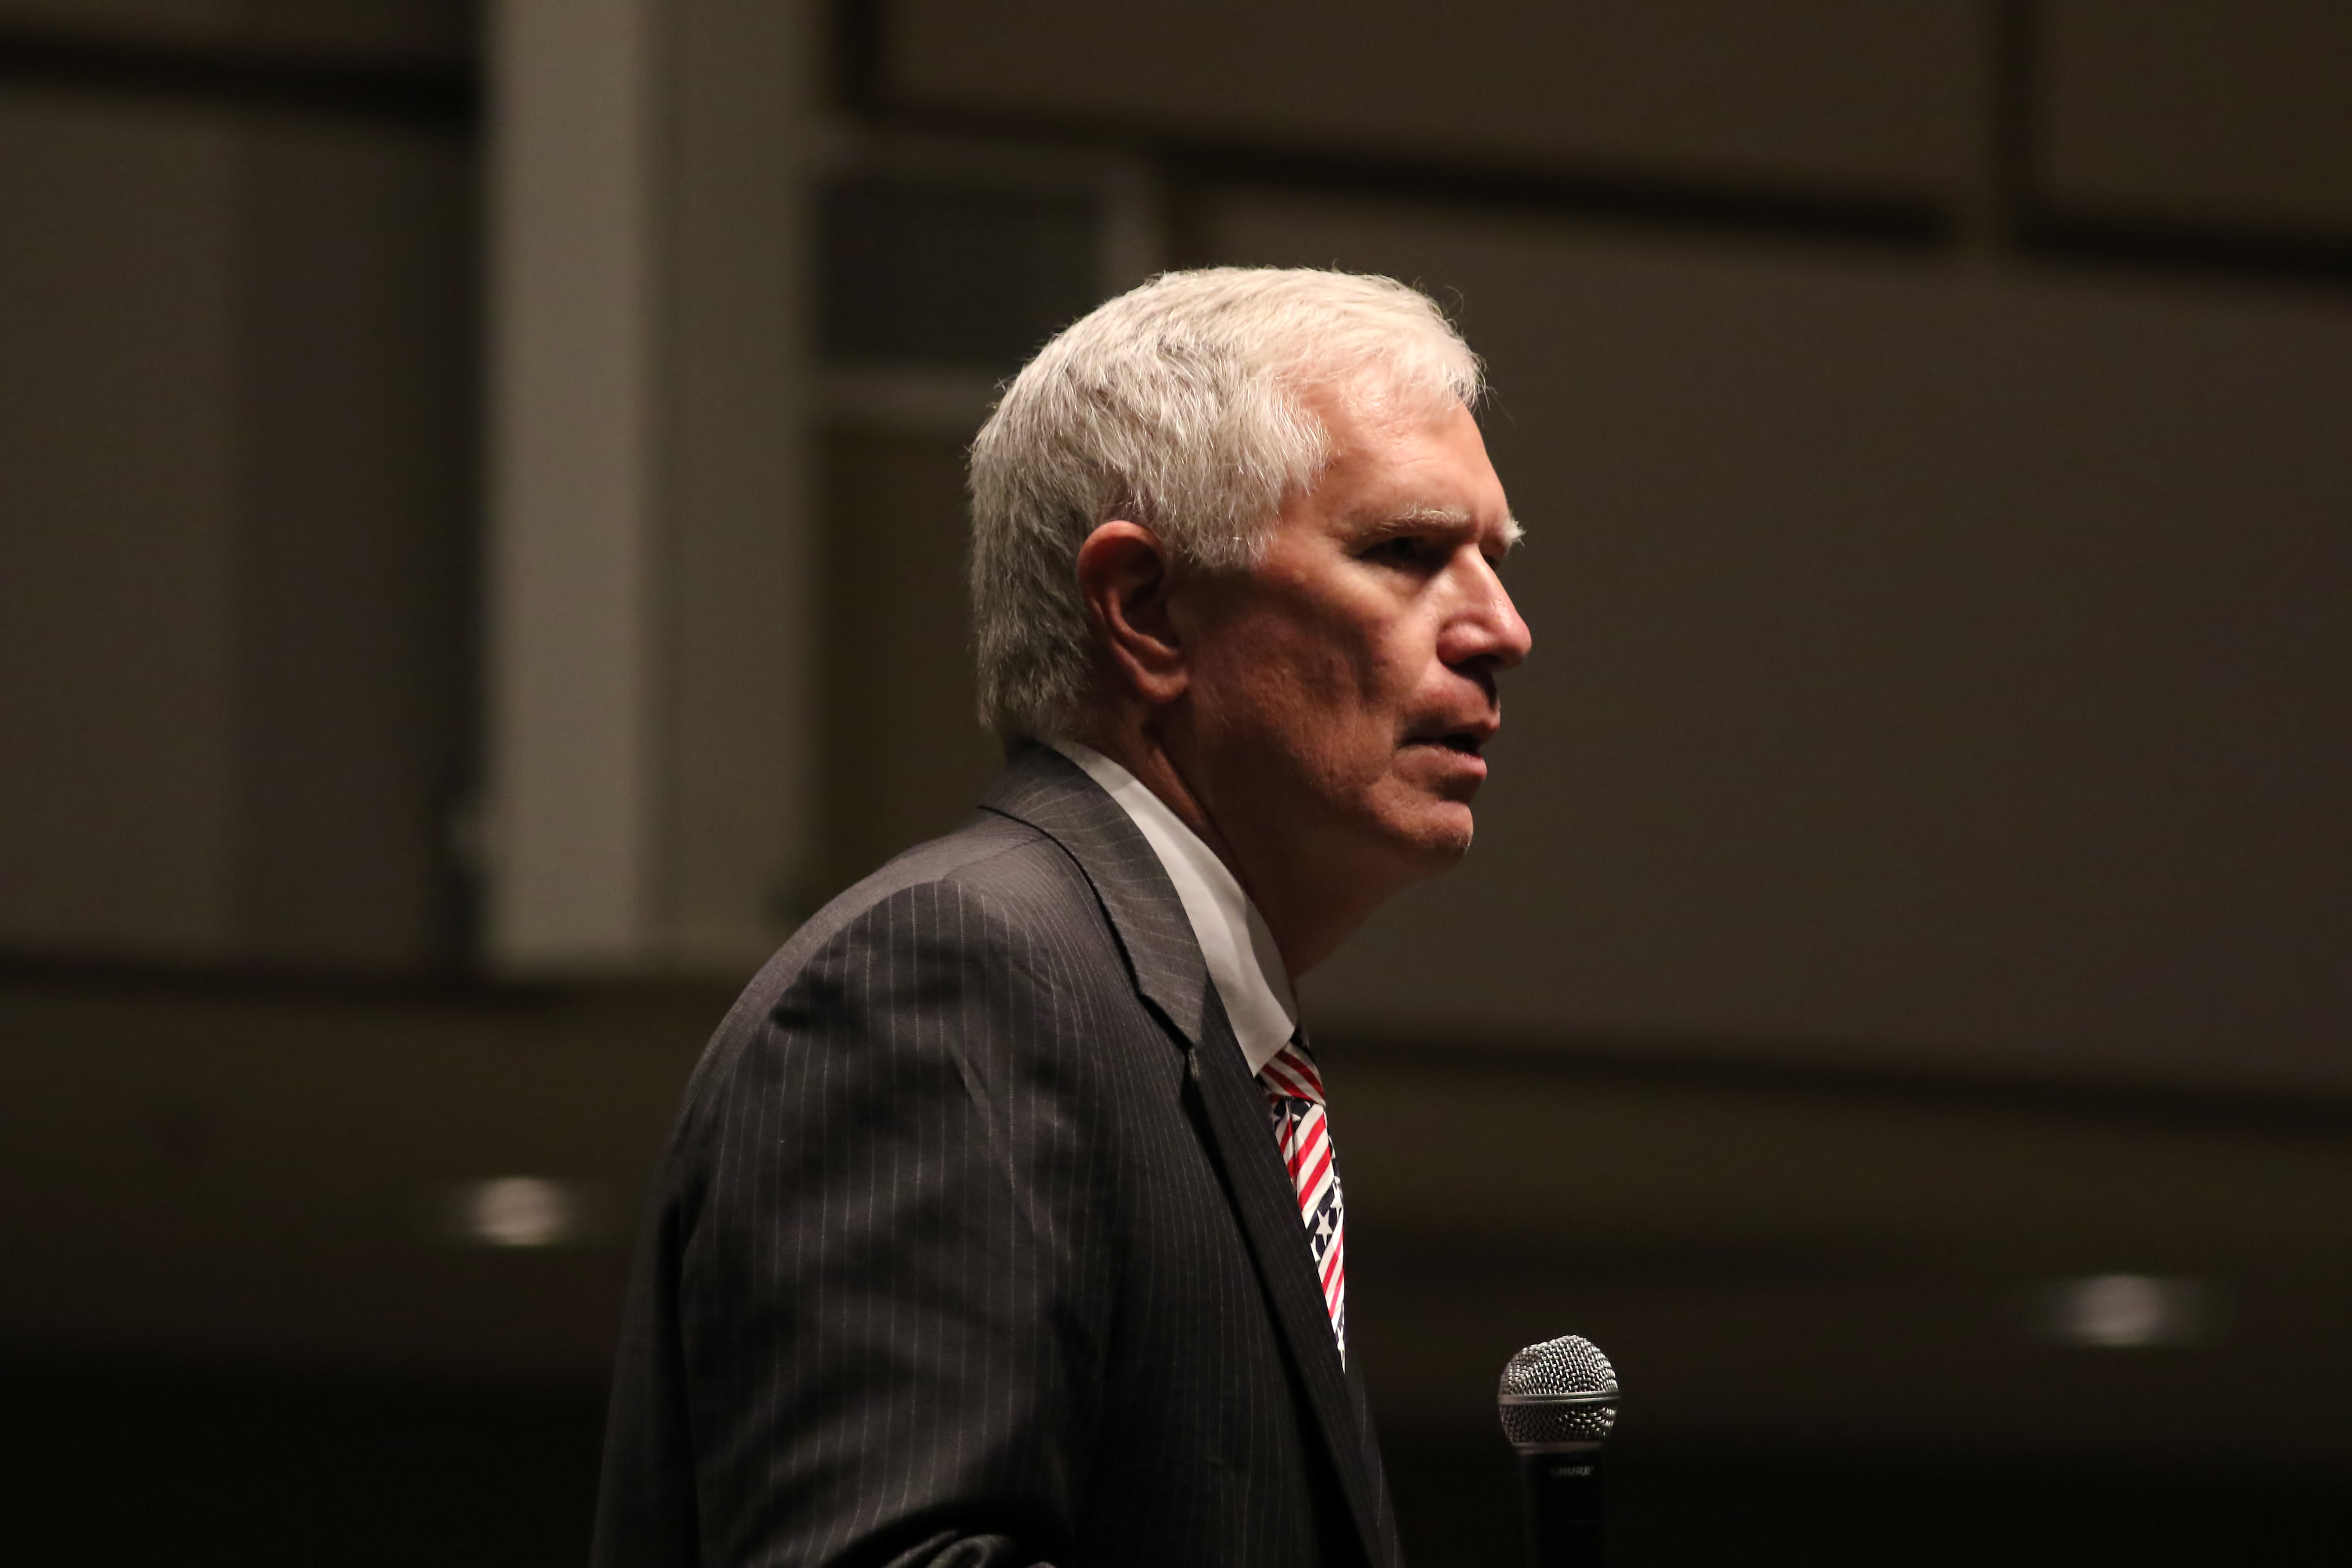 Mo Brooks's CNN interview shows how detached from reality Trump's GOP has become